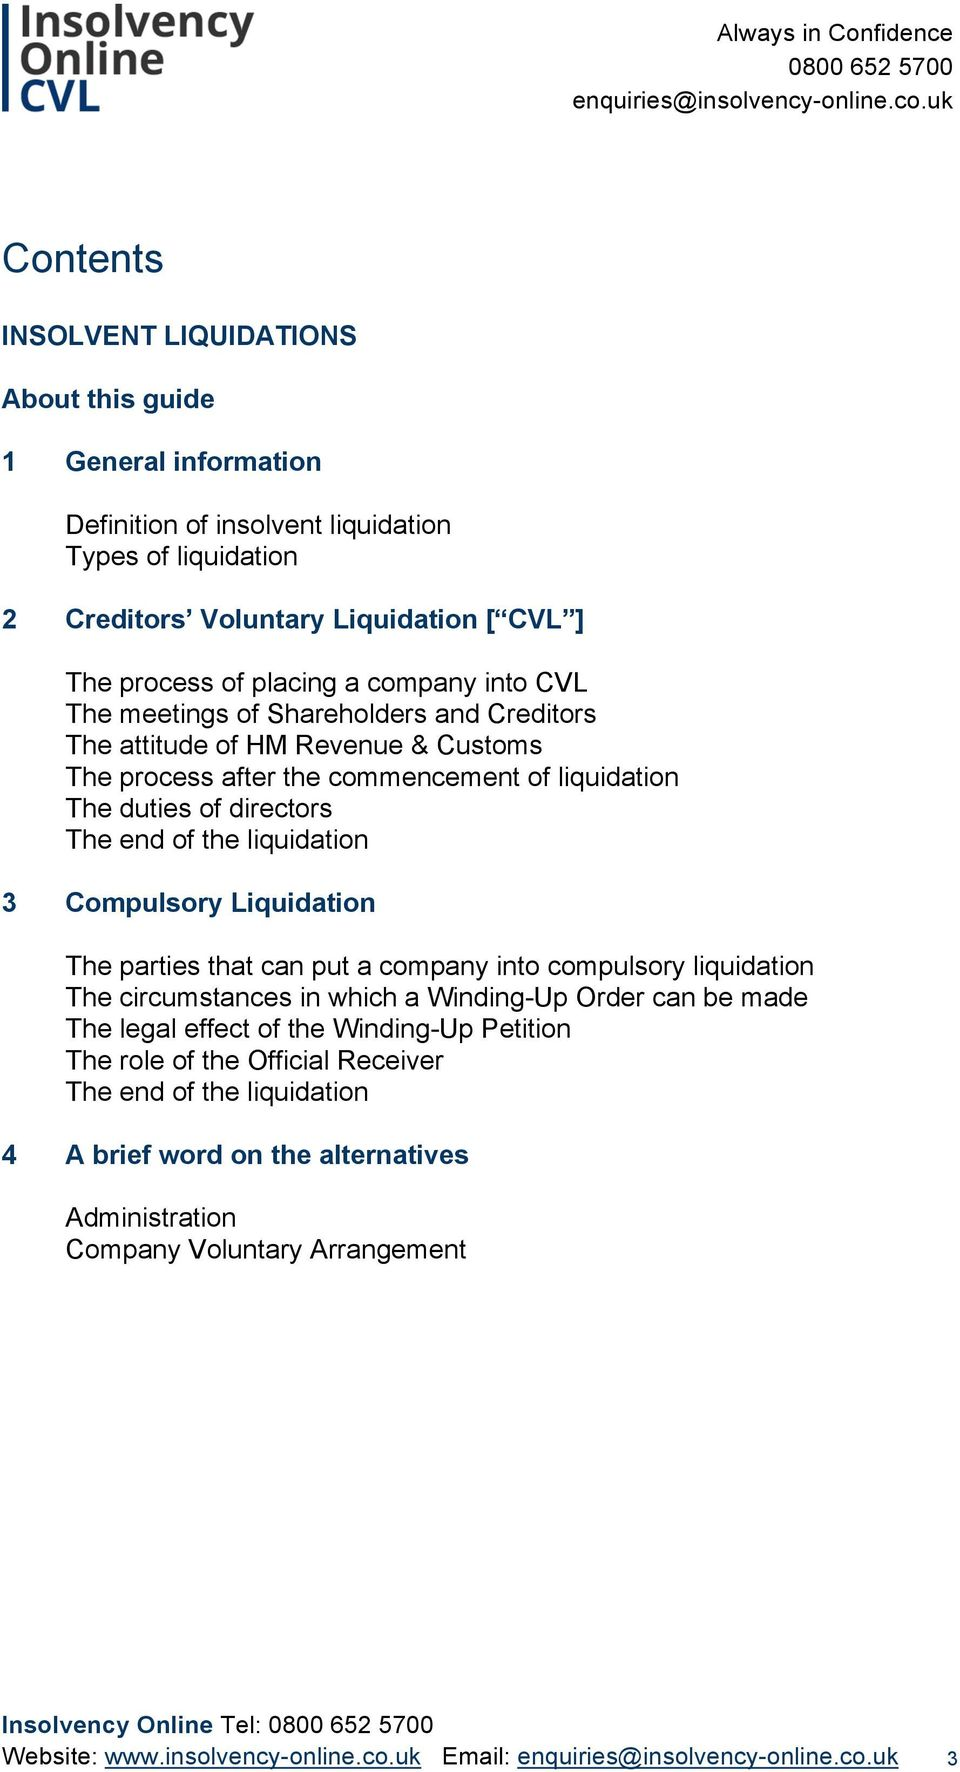 liquidation 3 Compulsory Liquidation The parties that can put a company into compulsory liquidation The circumstances in which a Winding-Up Order can be made The legal effect of the Winding-Up